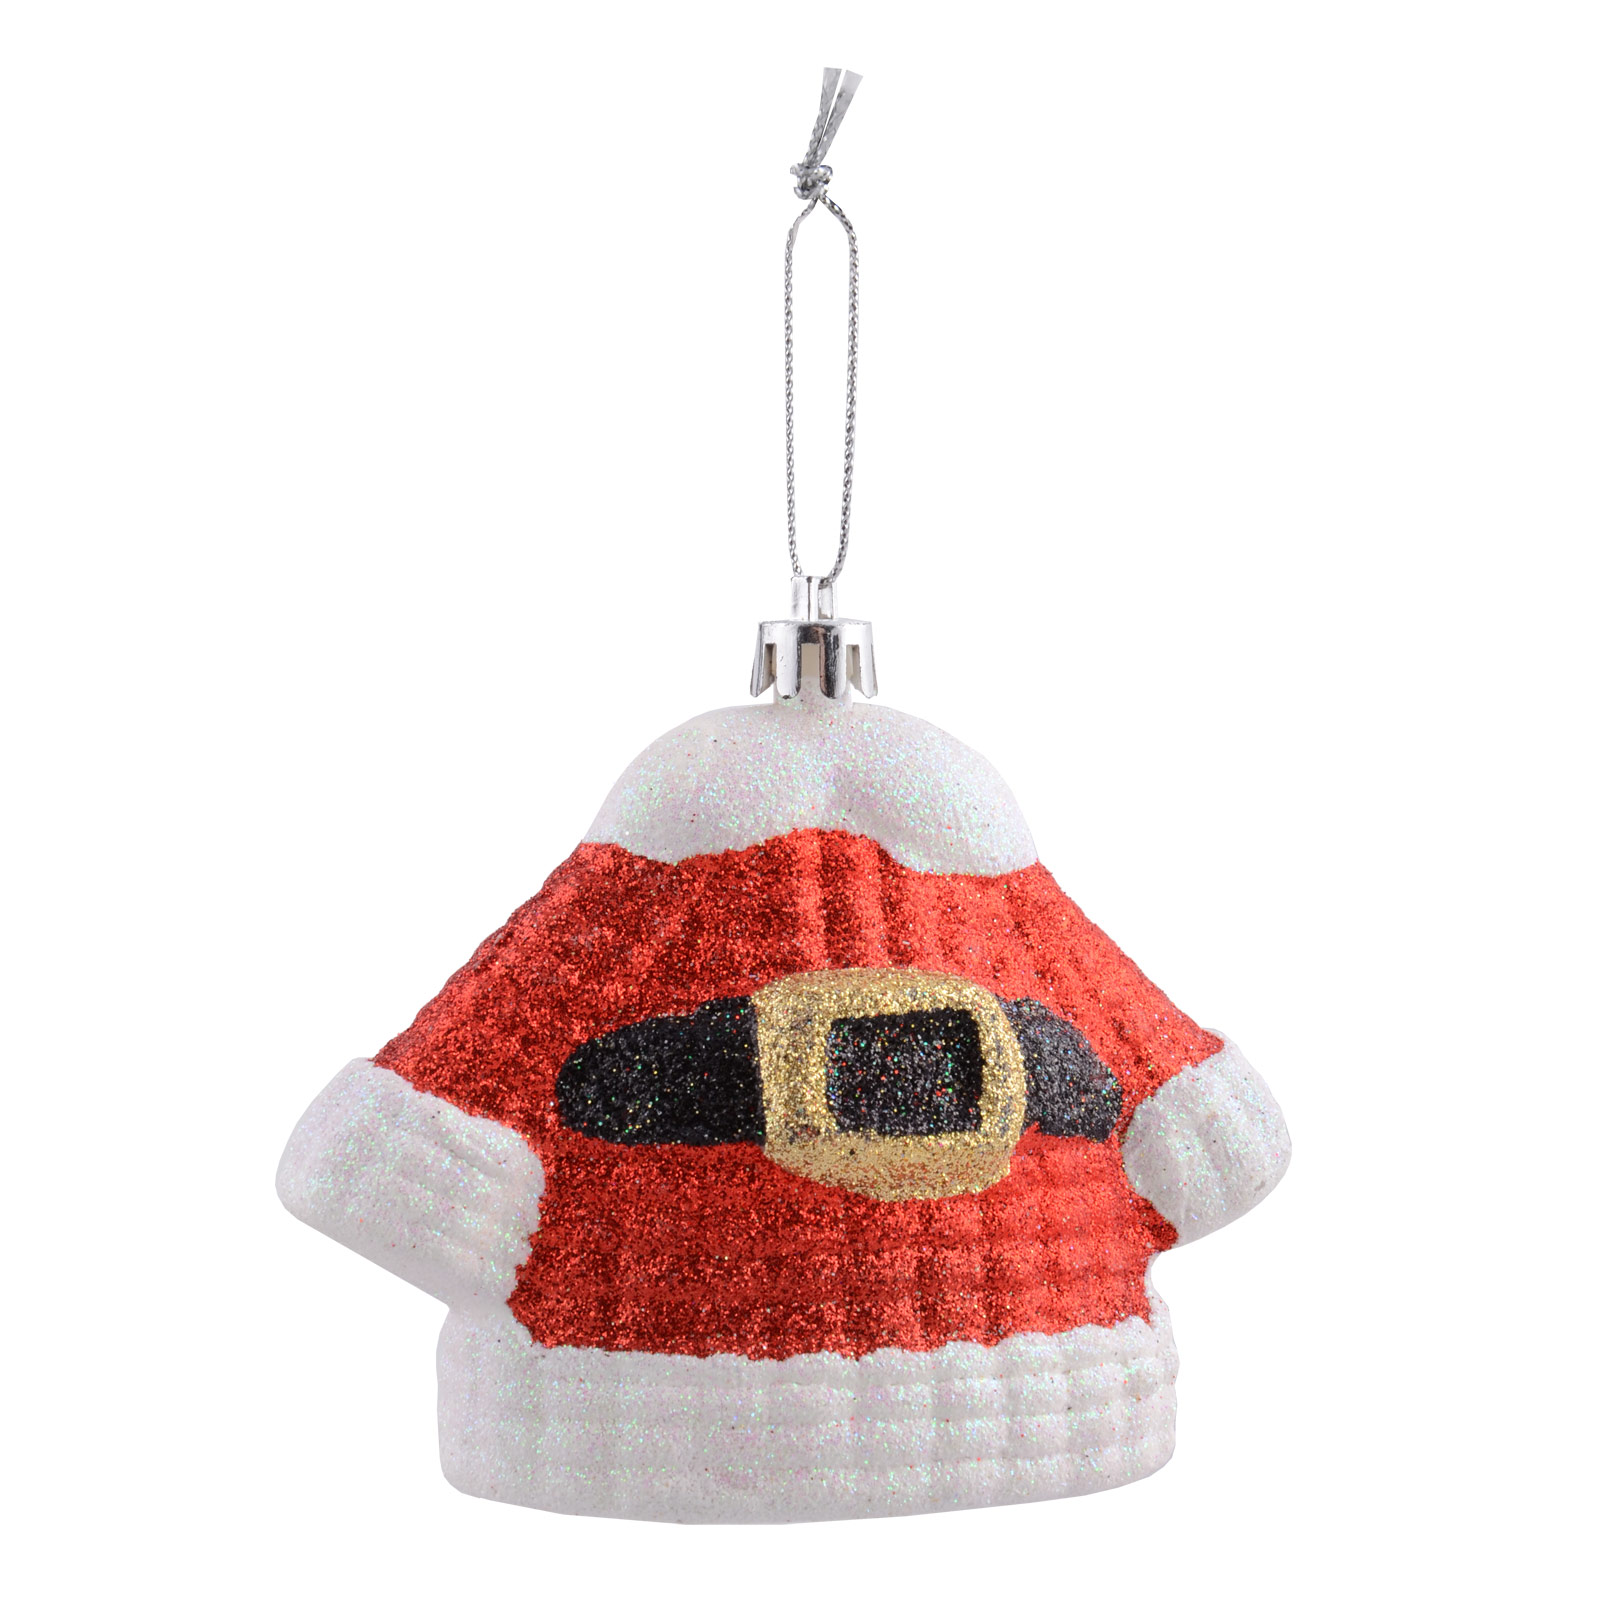 Red Glitter Christmas Tree Decorations : Red glitter santa hanging christmas tree decorations